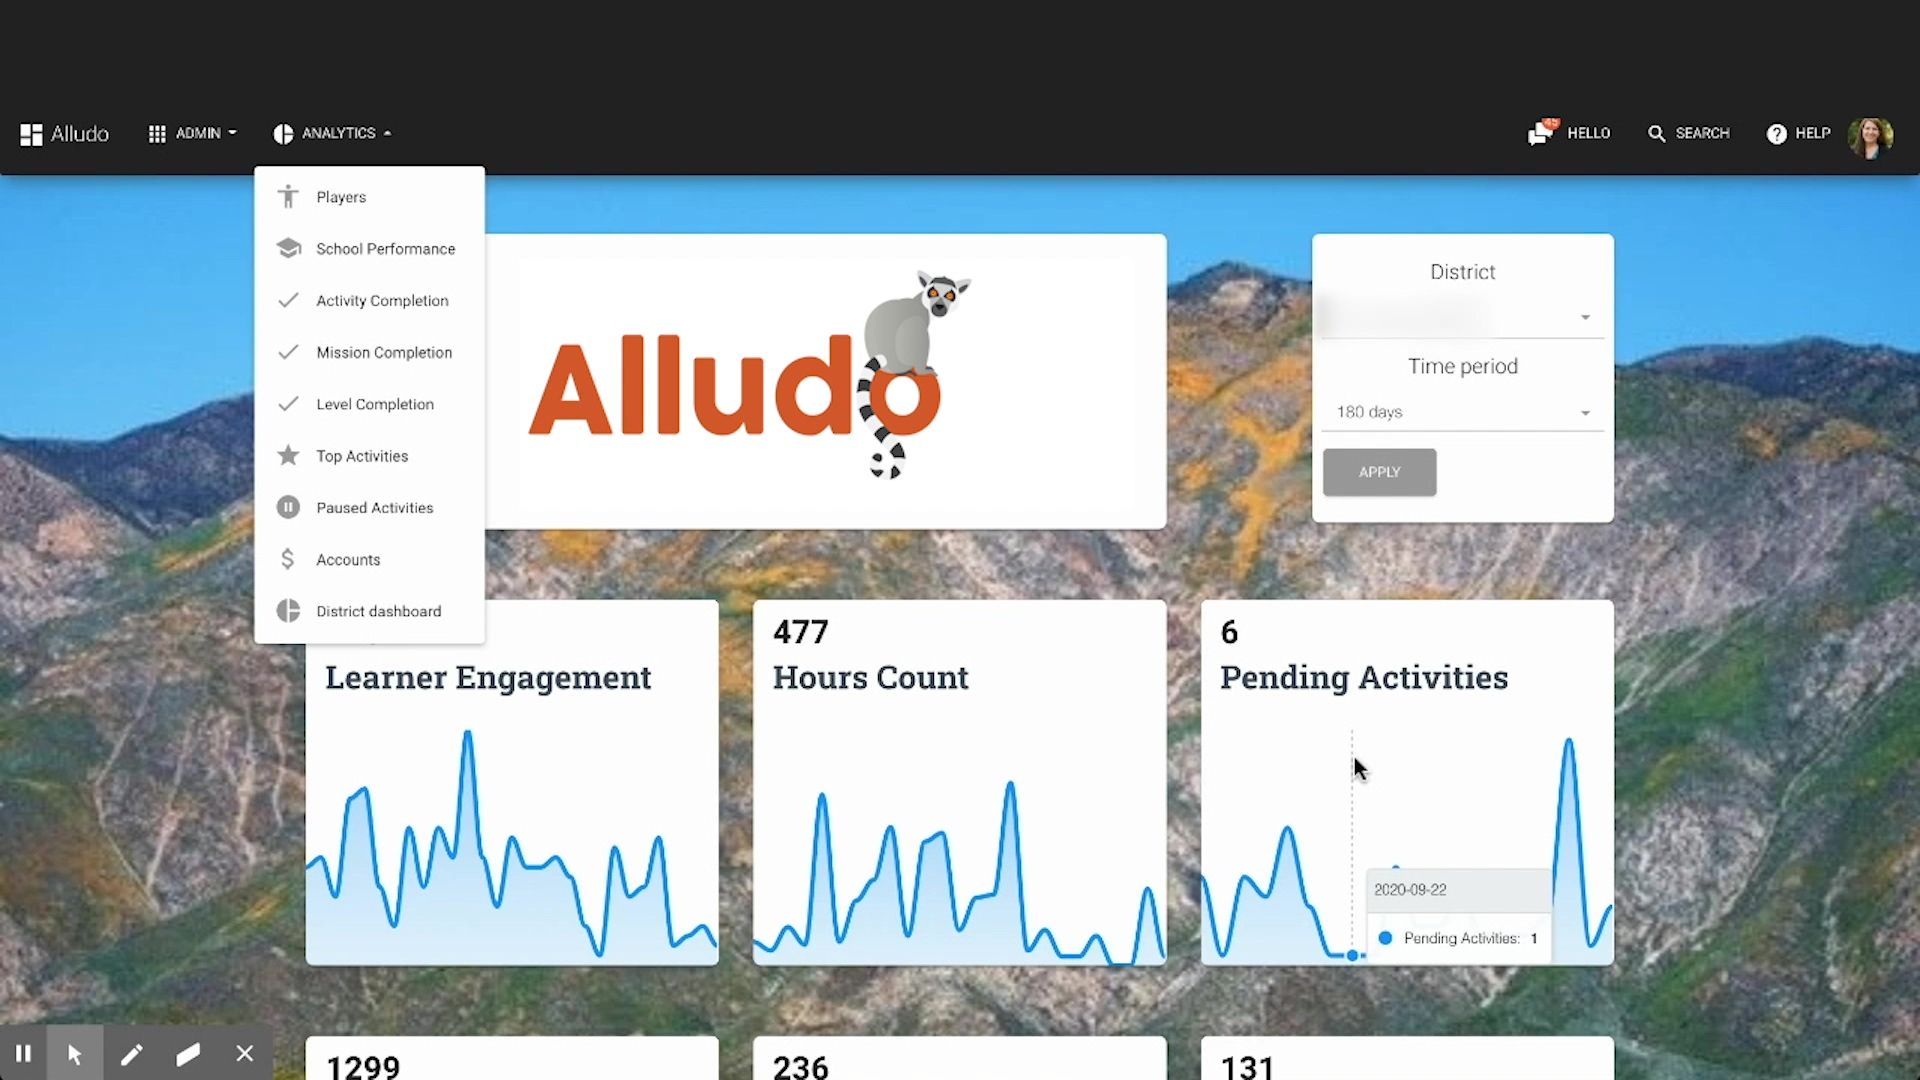 Alludo_Features_Reporting_Analytics_v2-1